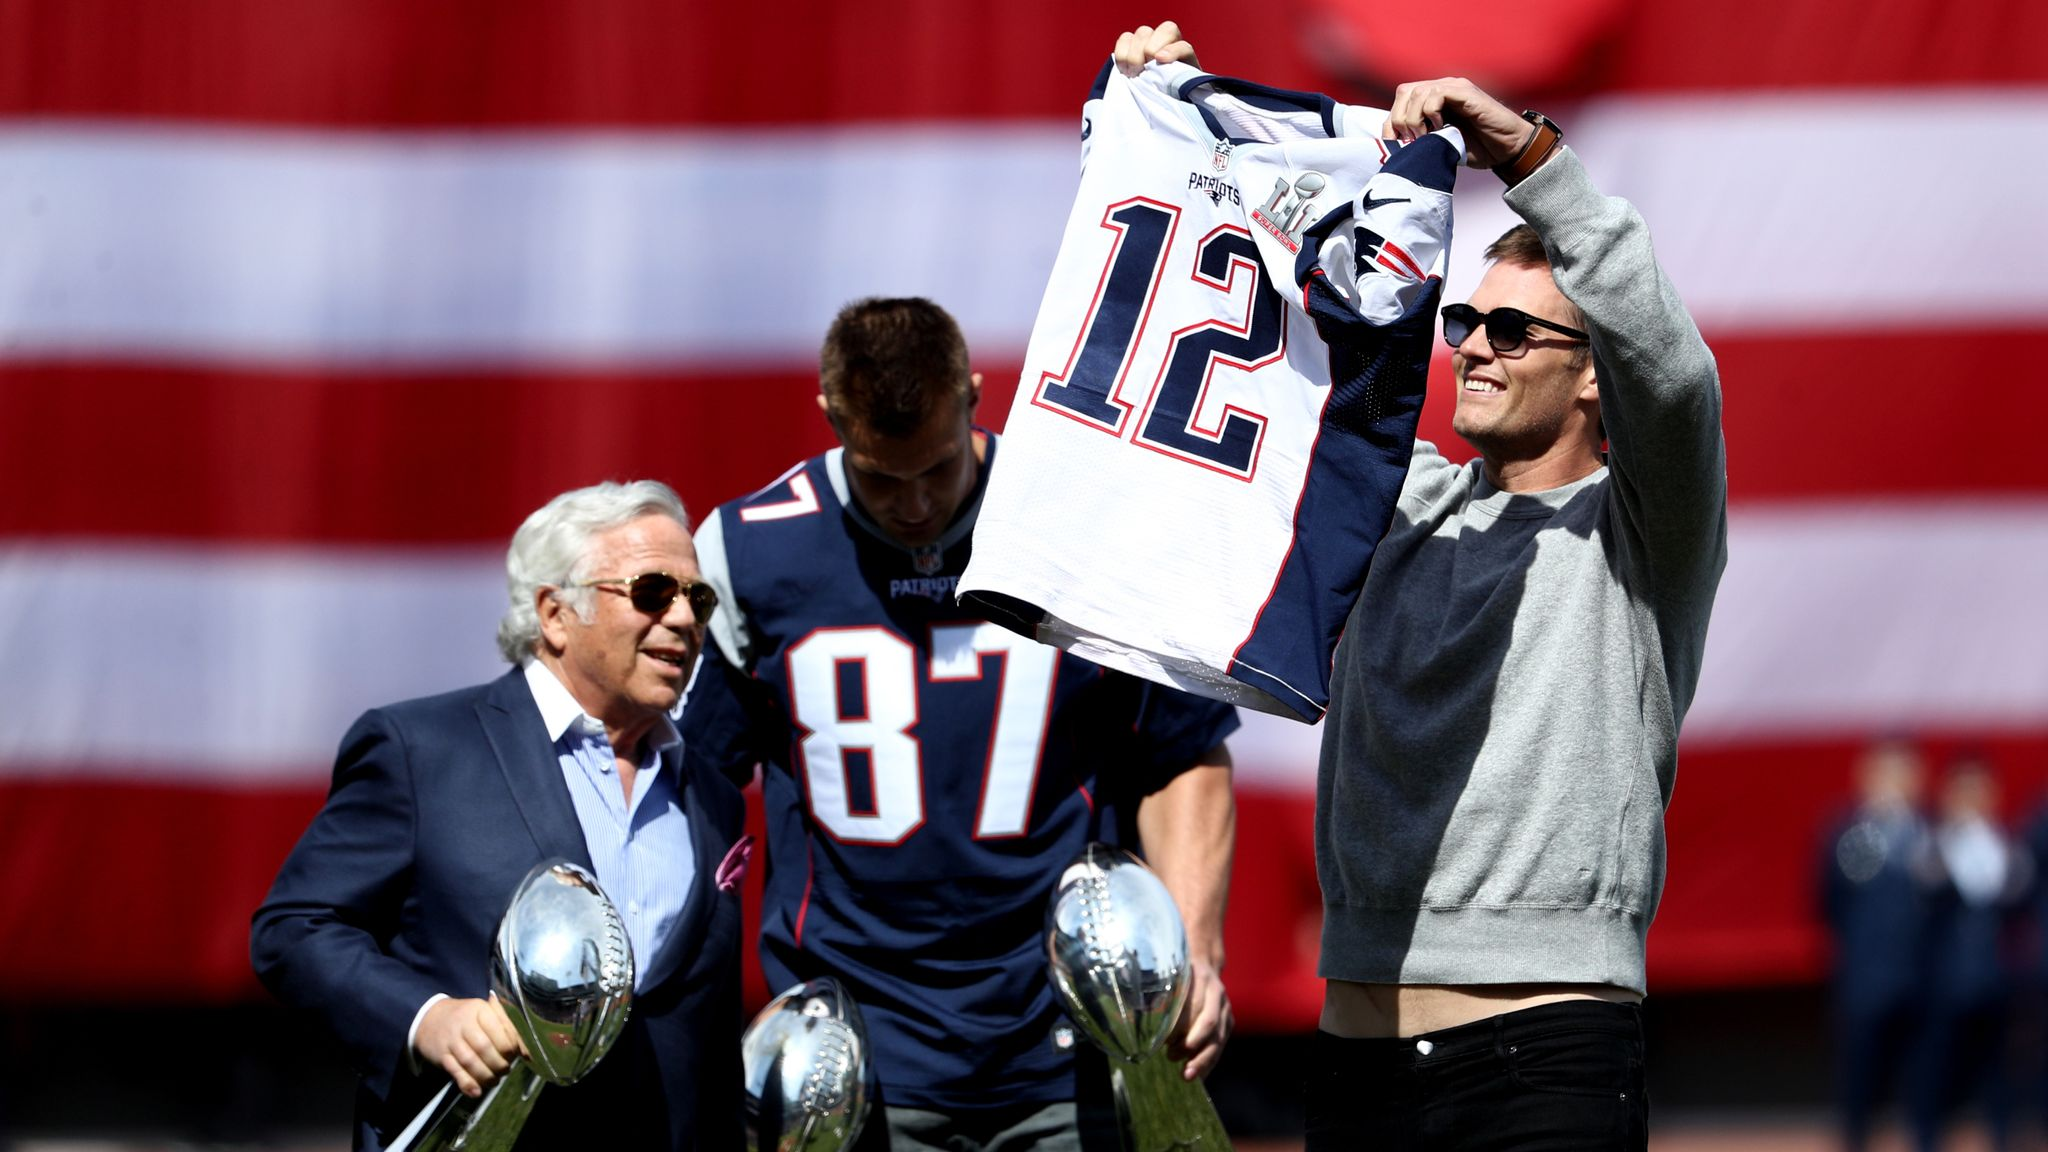 Rob Gronkowski 'steals' Tom Brady's jersey at Red Sox opening day ...